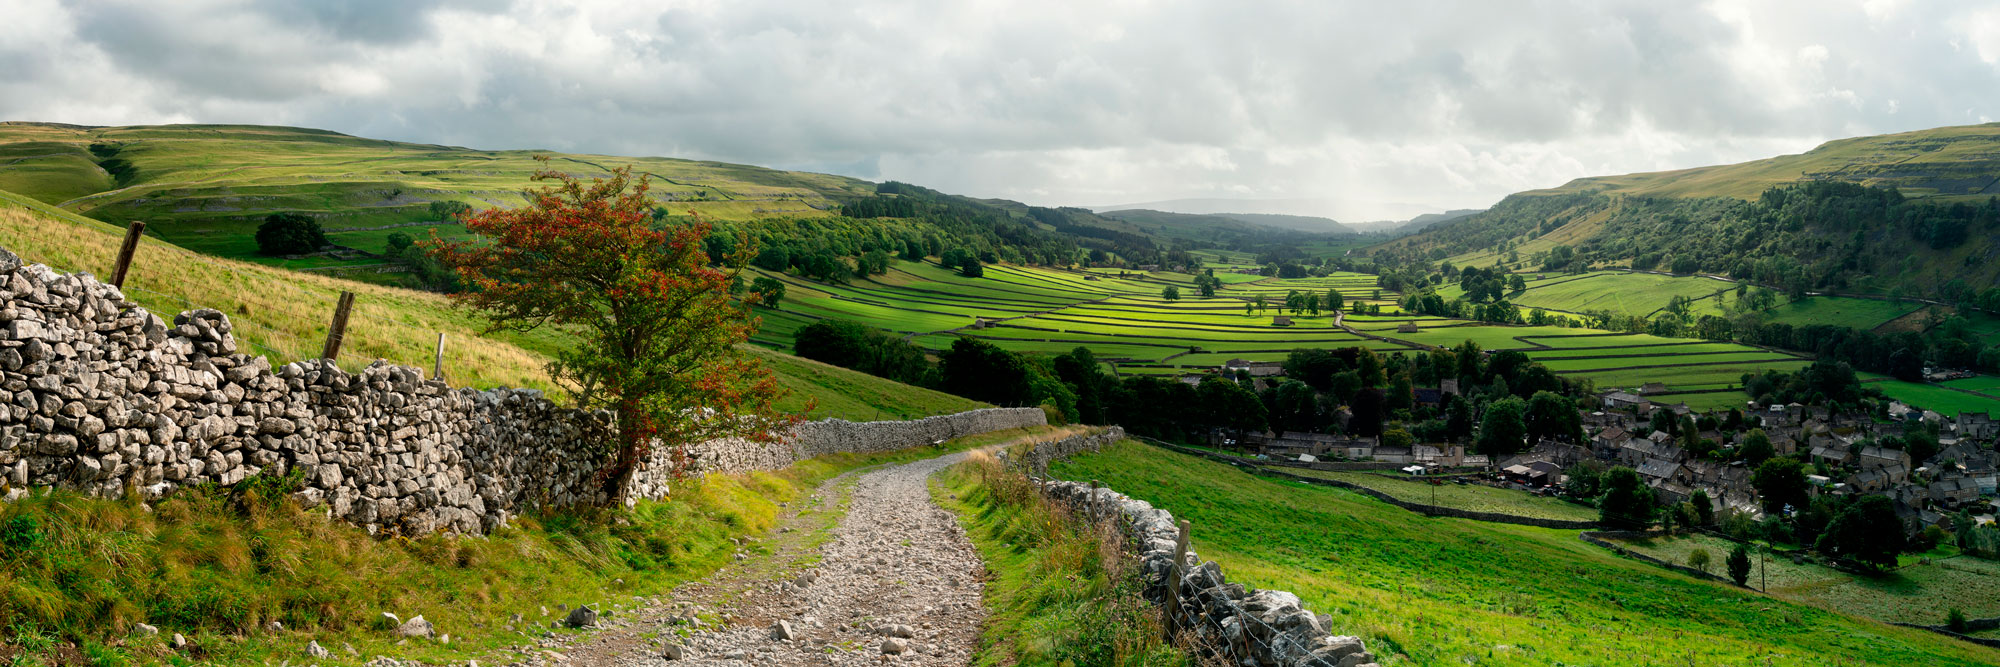 Winding country stone road Yorkshire Dales